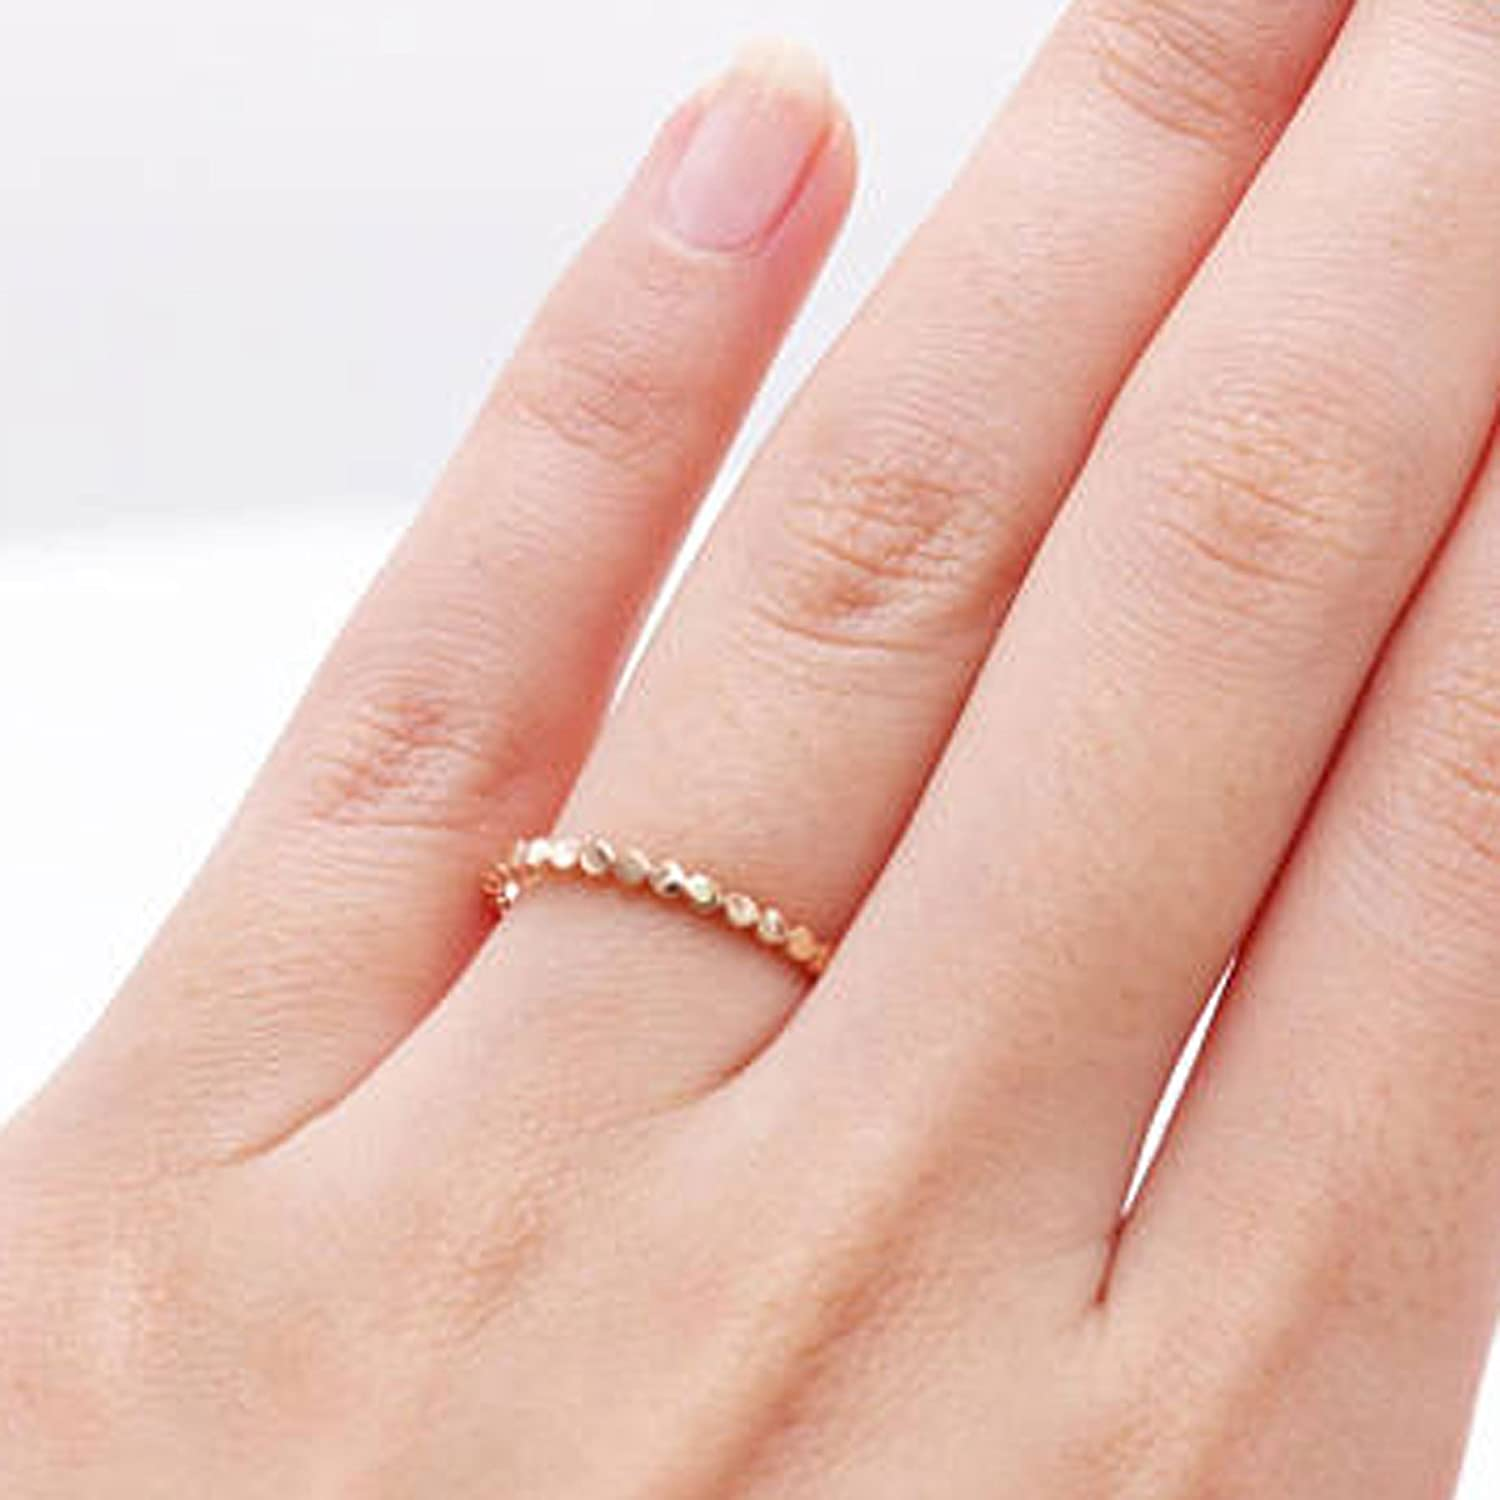 Amazon.com: 14K Rose Gold Flat Bead Ring /Dotted Band/Perfect ...